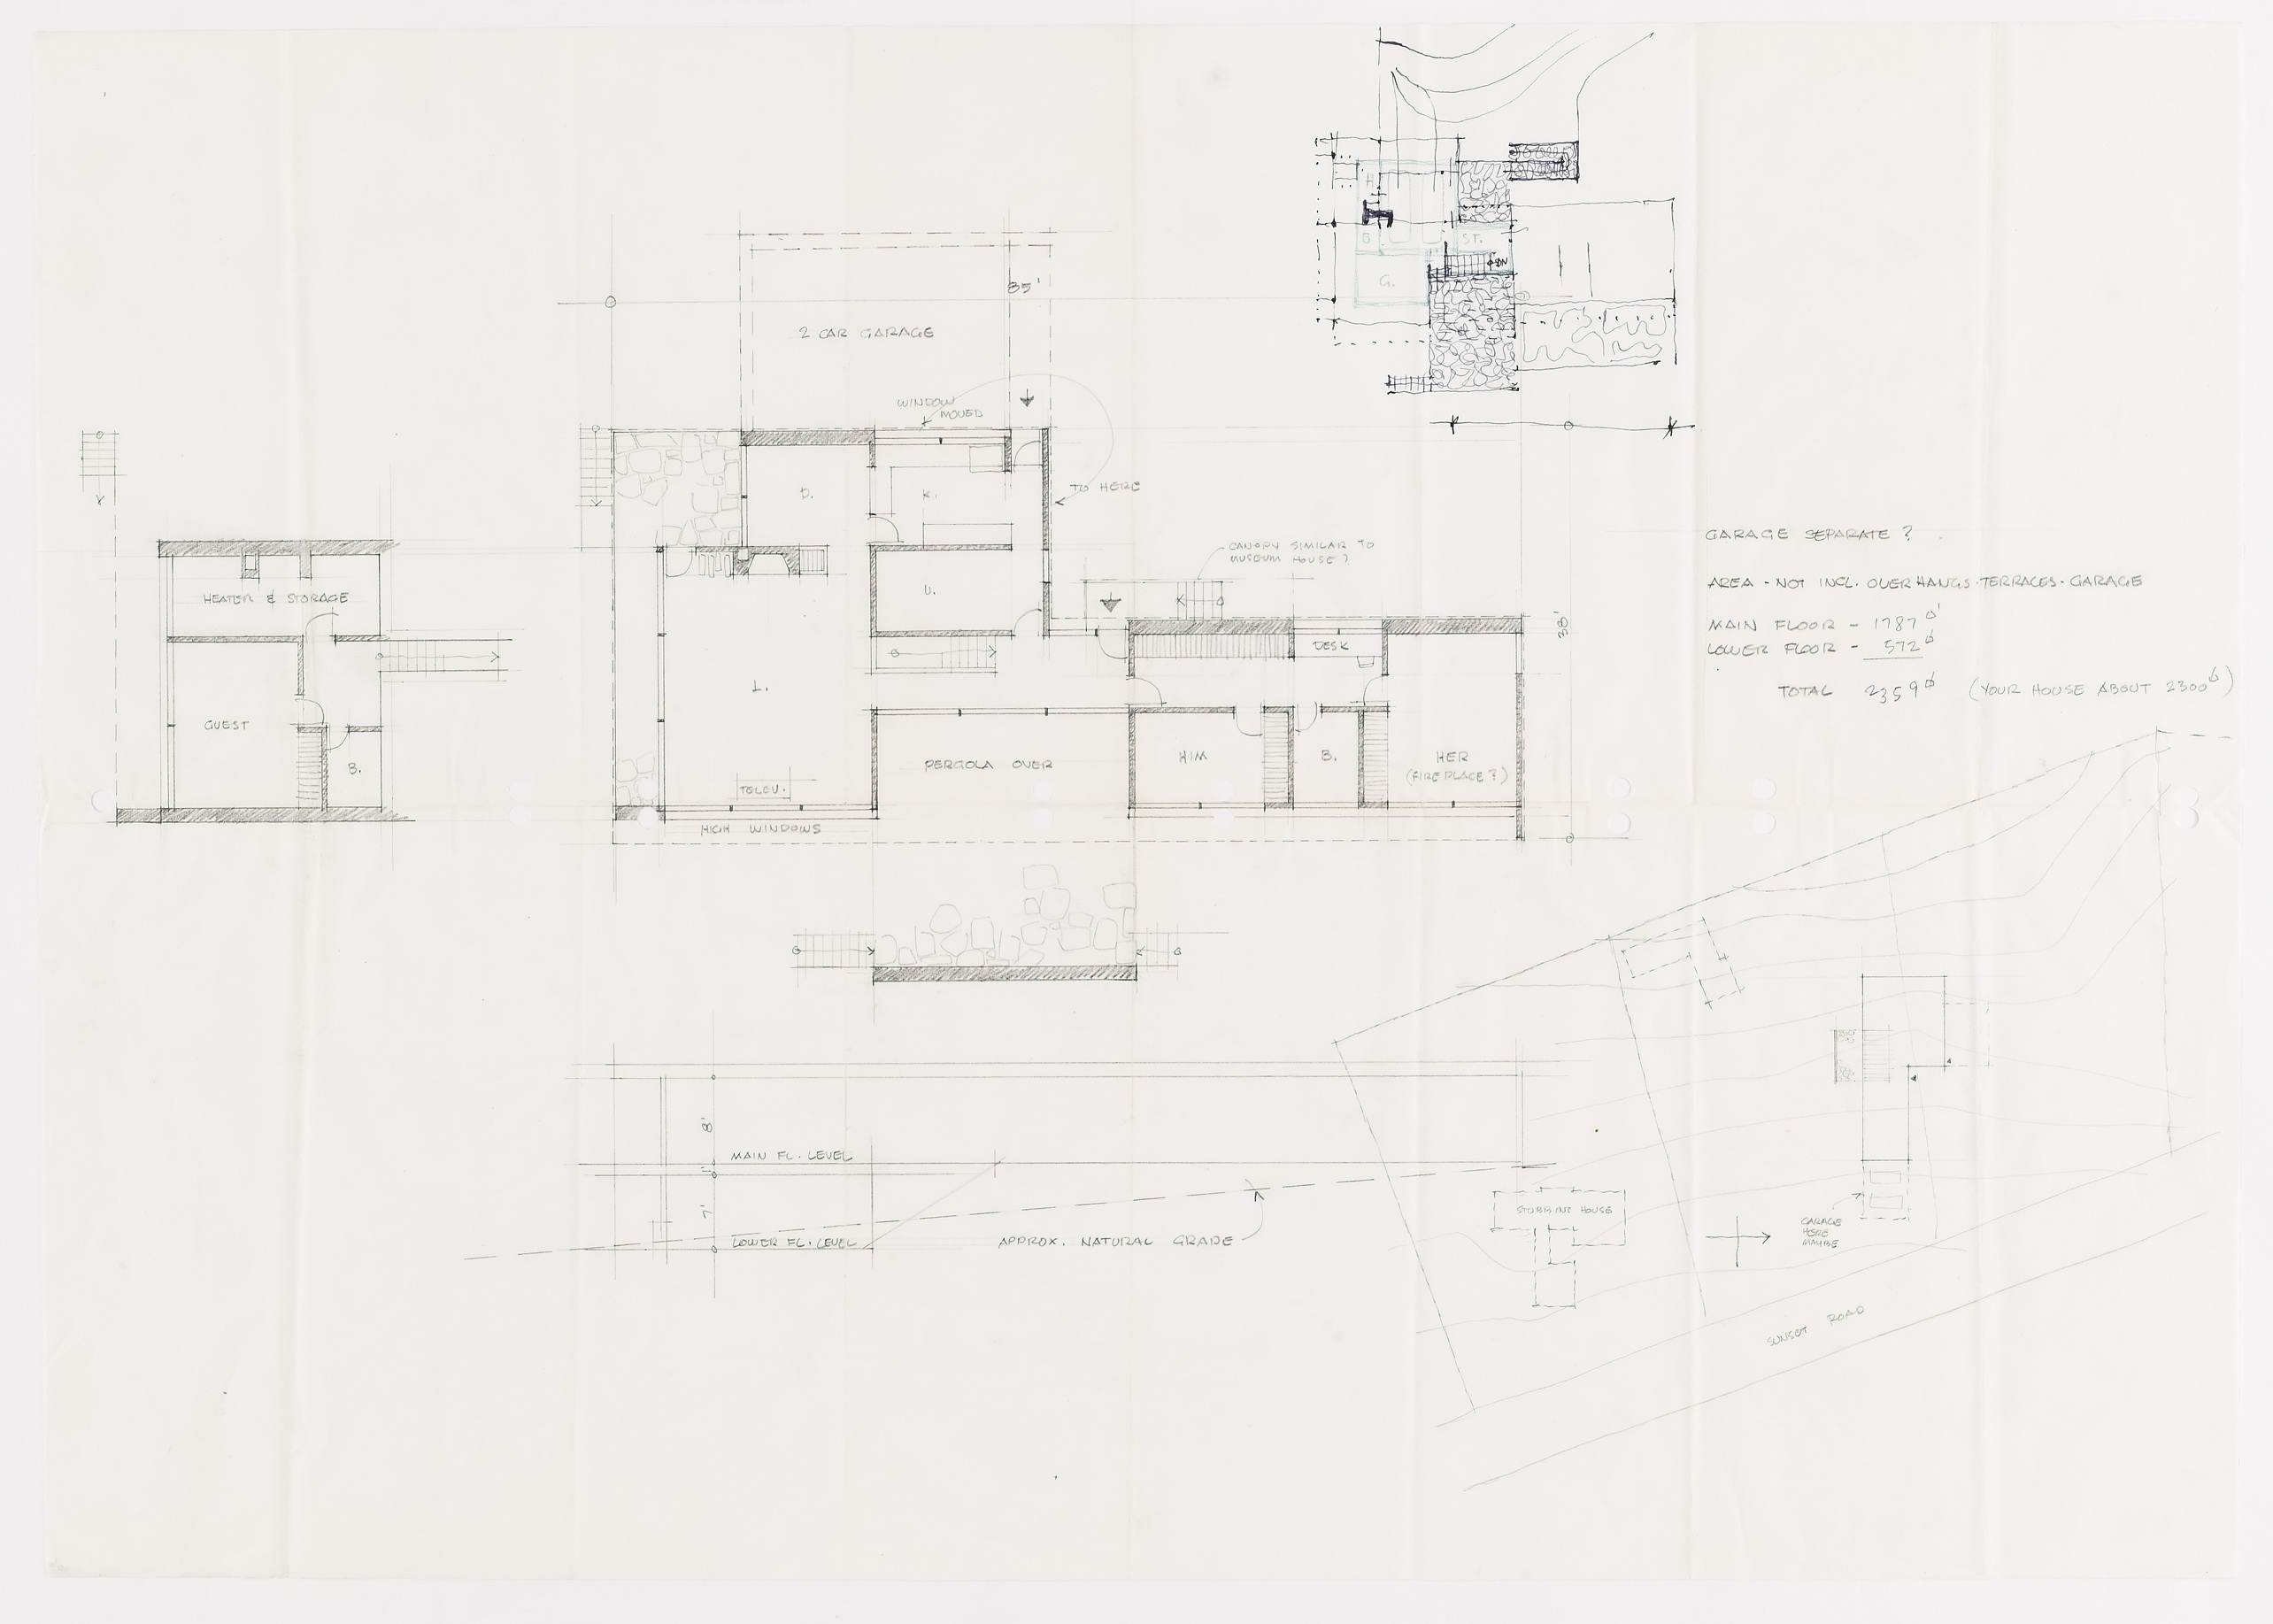 Click to select: Plans and Site Plan (preliminary drawing)